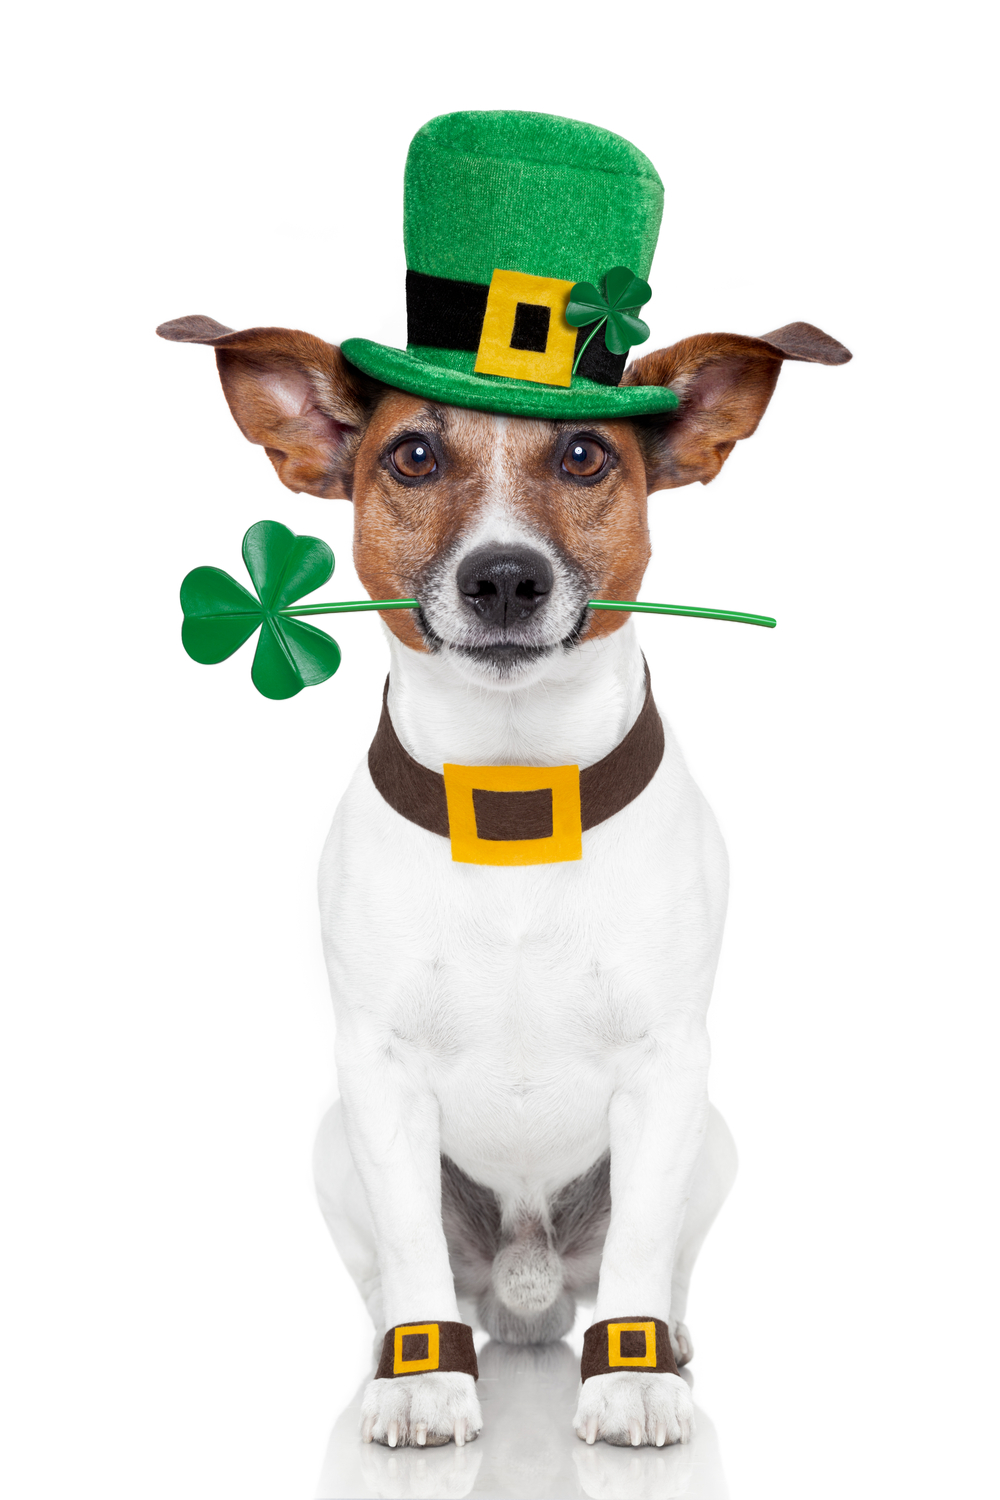 A St Patrick's Day lucky dog dressed up with a green hat, and a clover in his mouth.